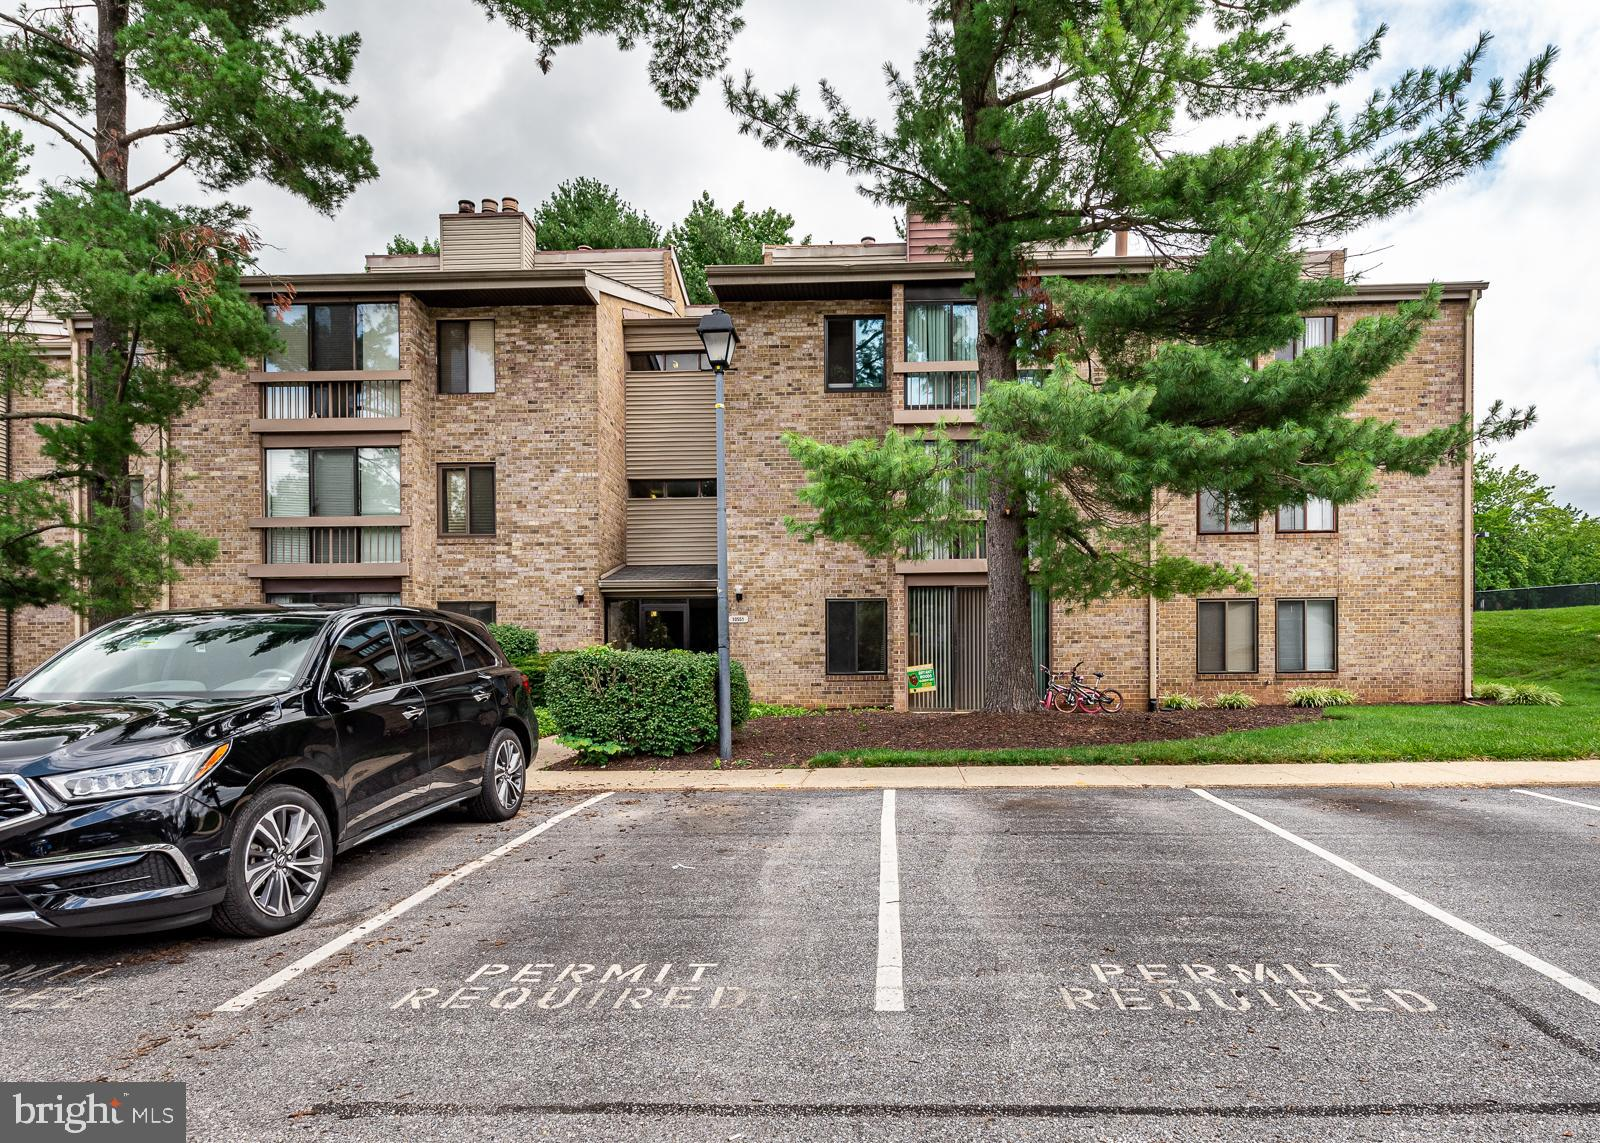 Welcome to Columbia, one of the finest communities in Howard County. This 2-bedroom condo is located